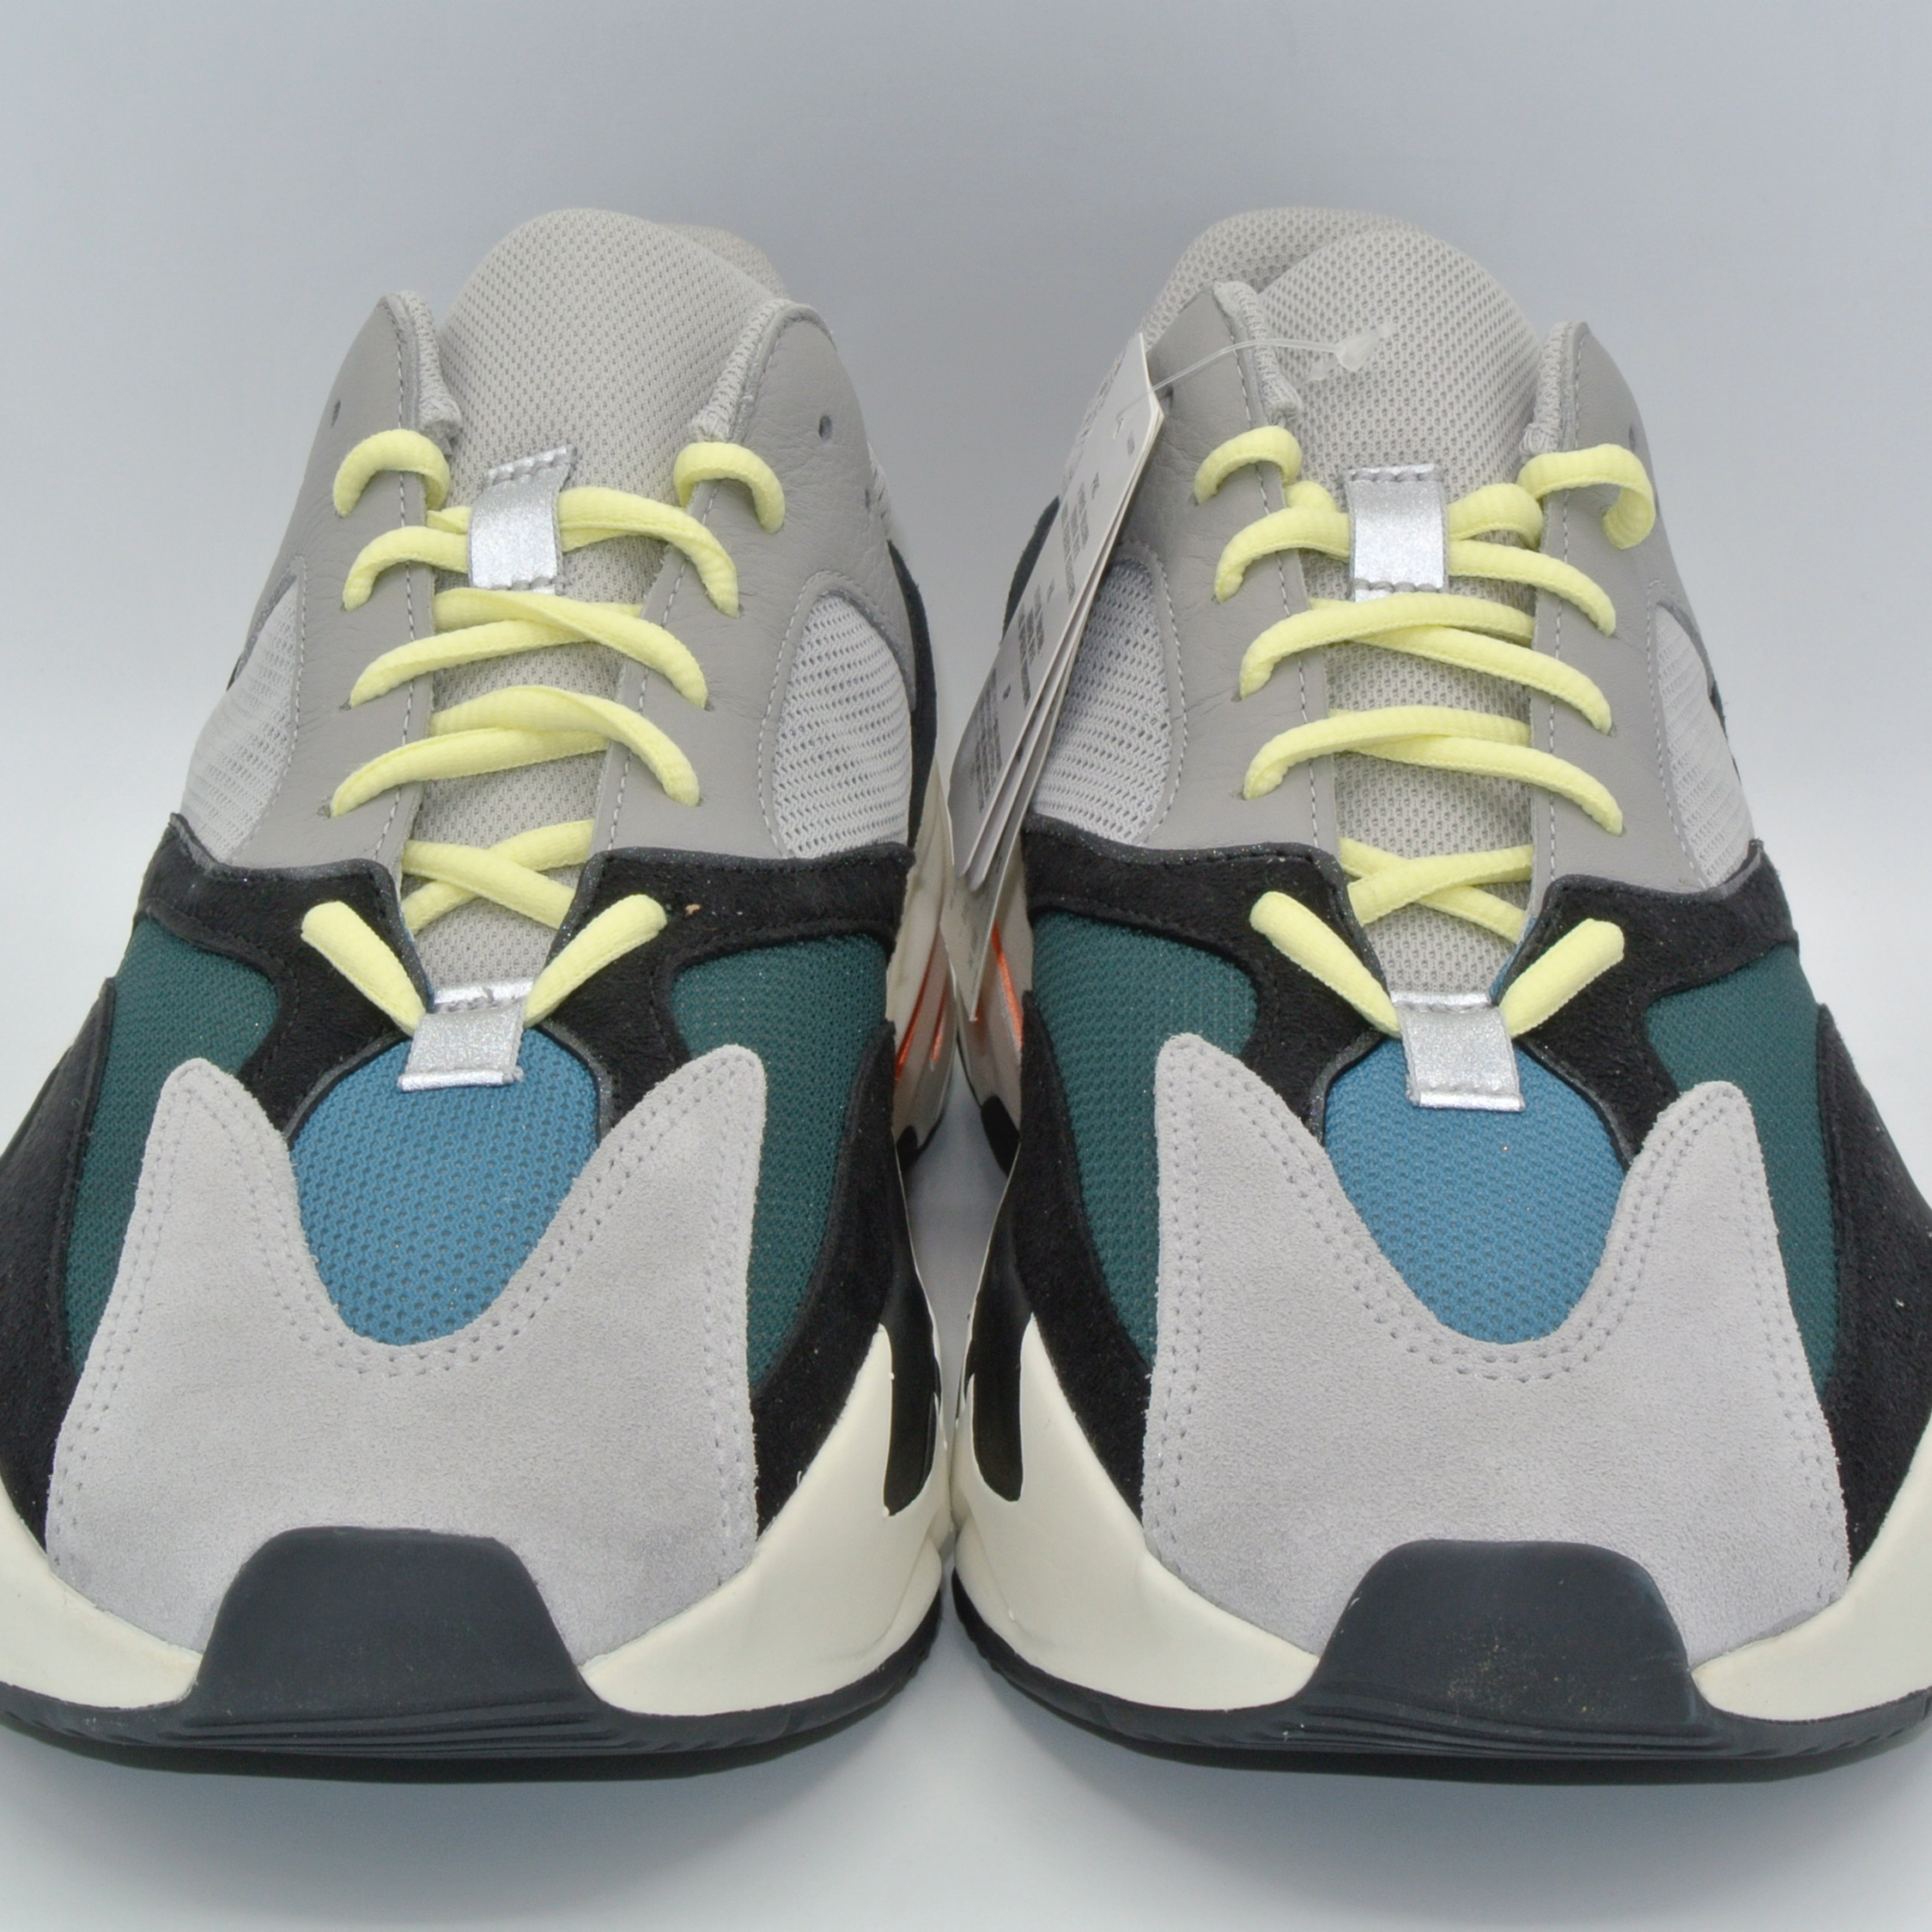 new style f8496 74a6d Yeezy 700 Waverunners